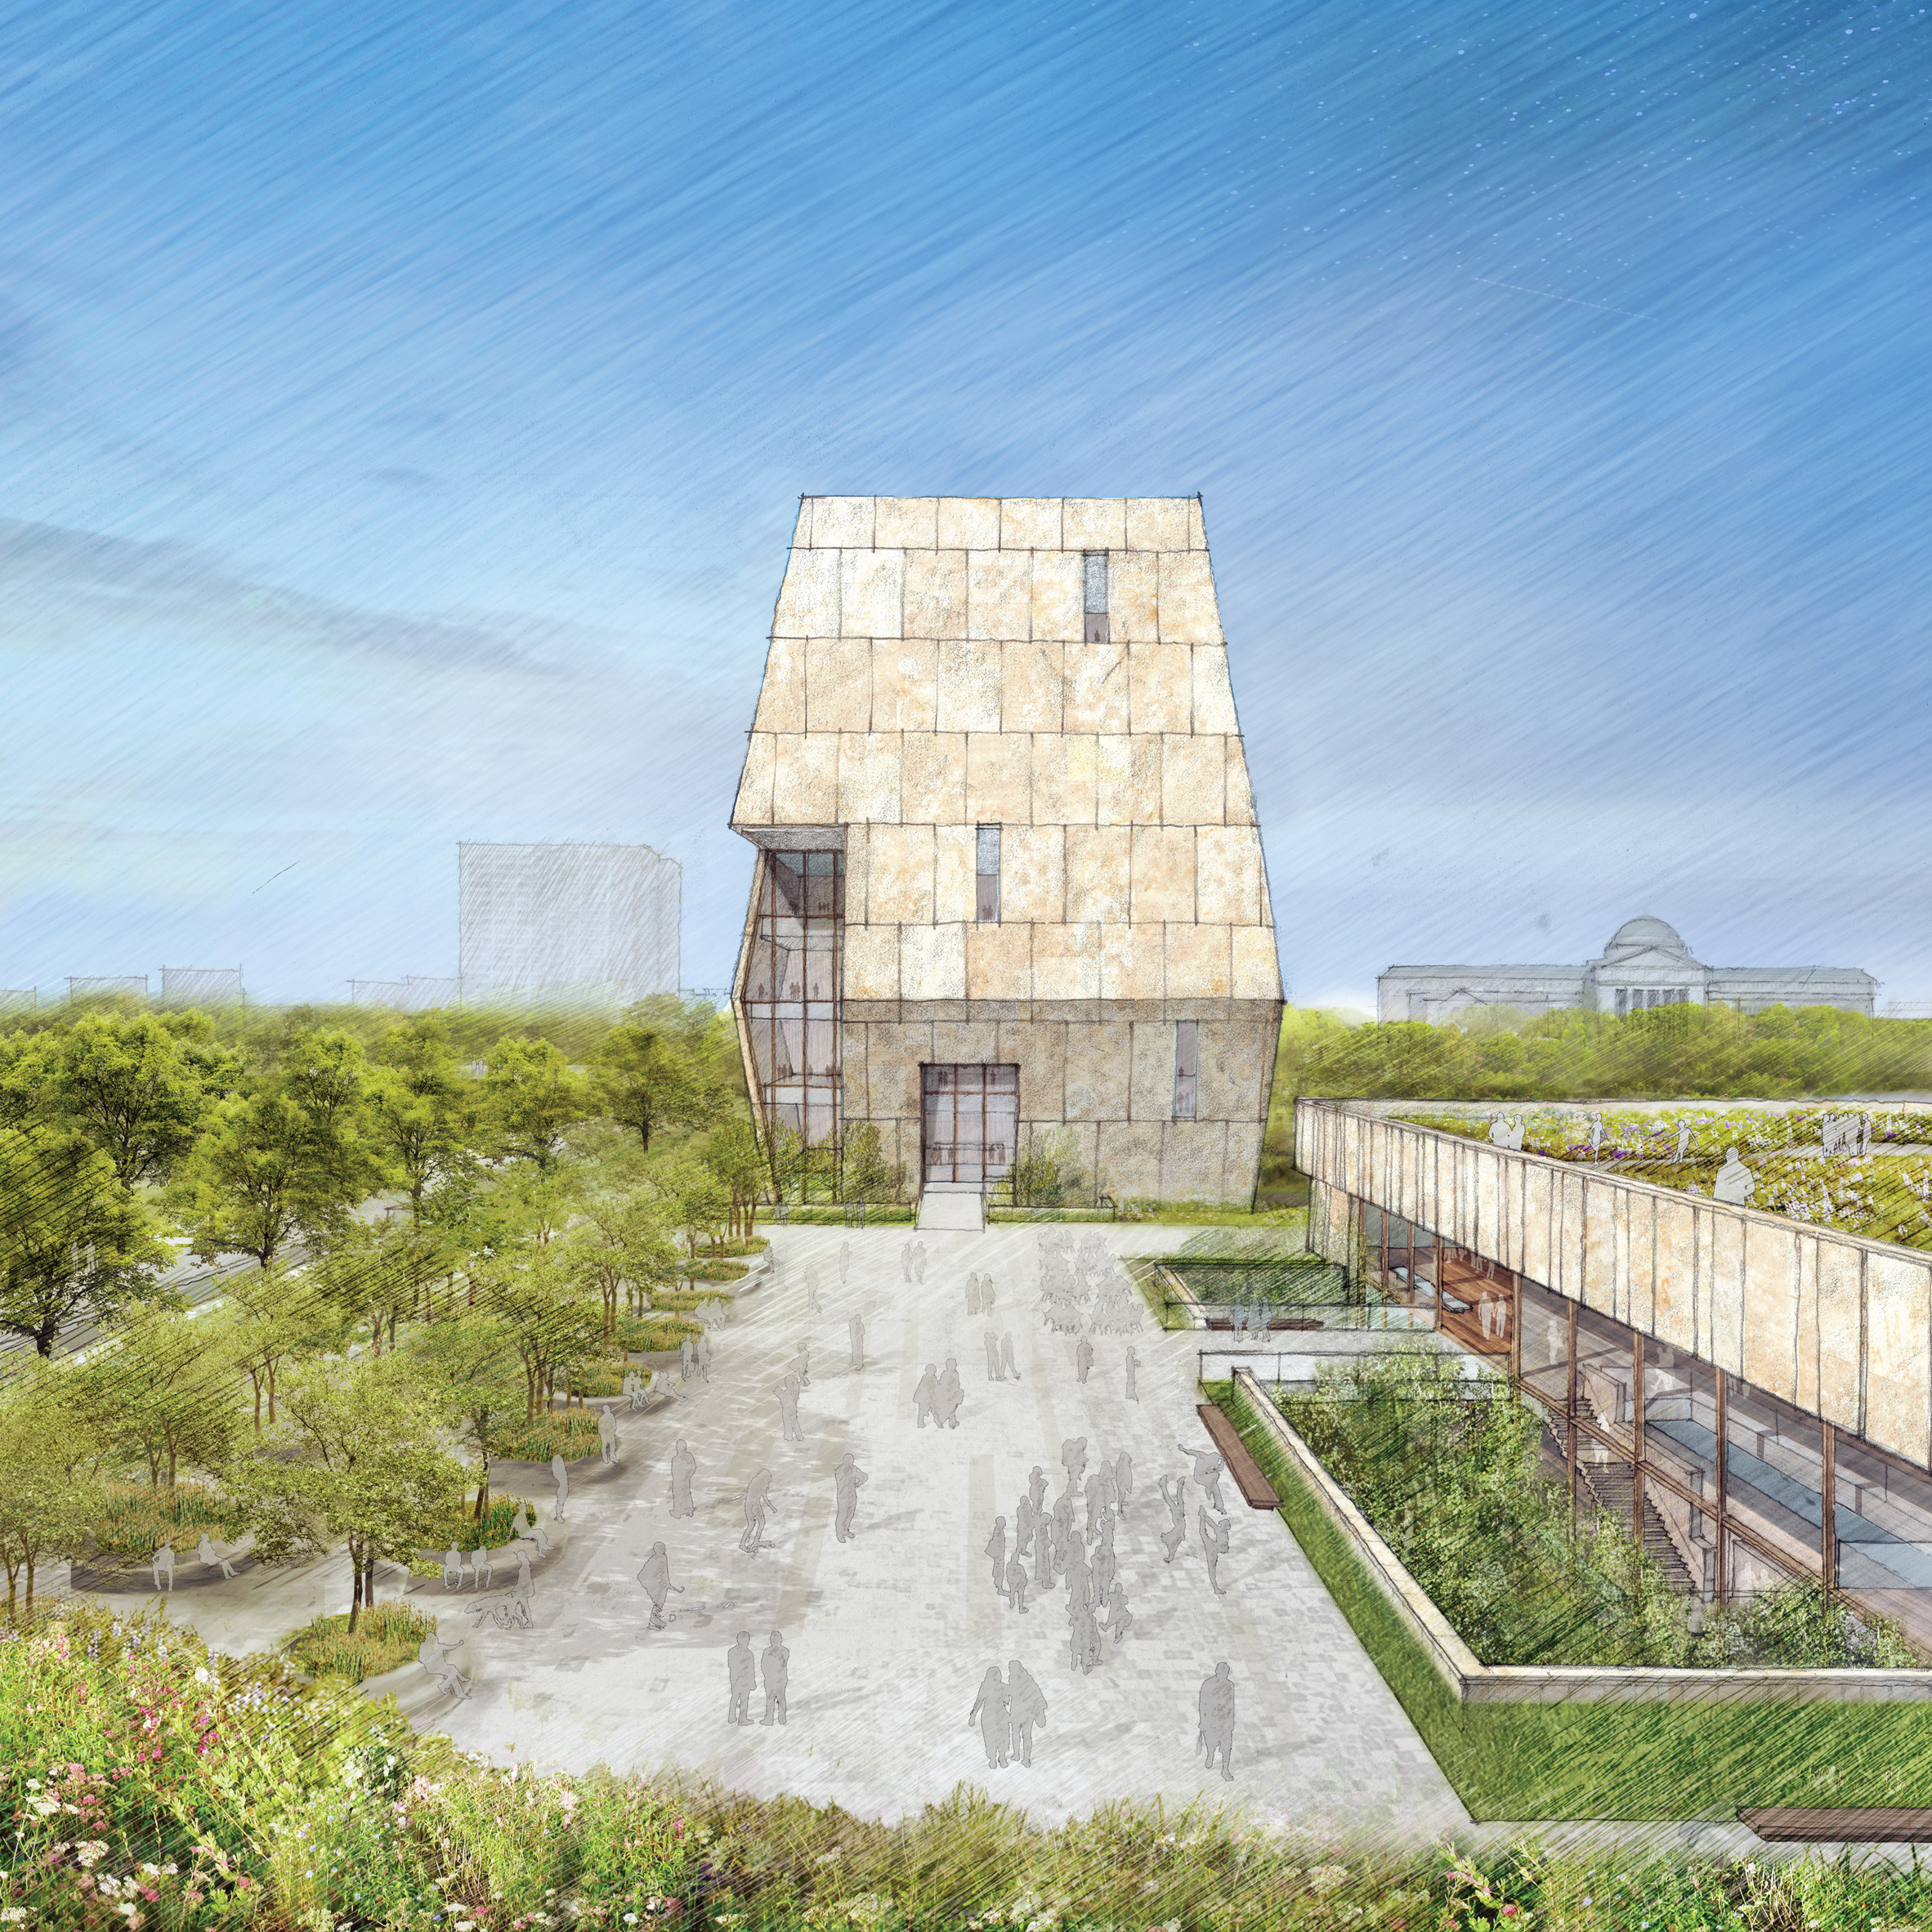 This week, Kapoor targeted Trump and Obama's presidential library was revealed